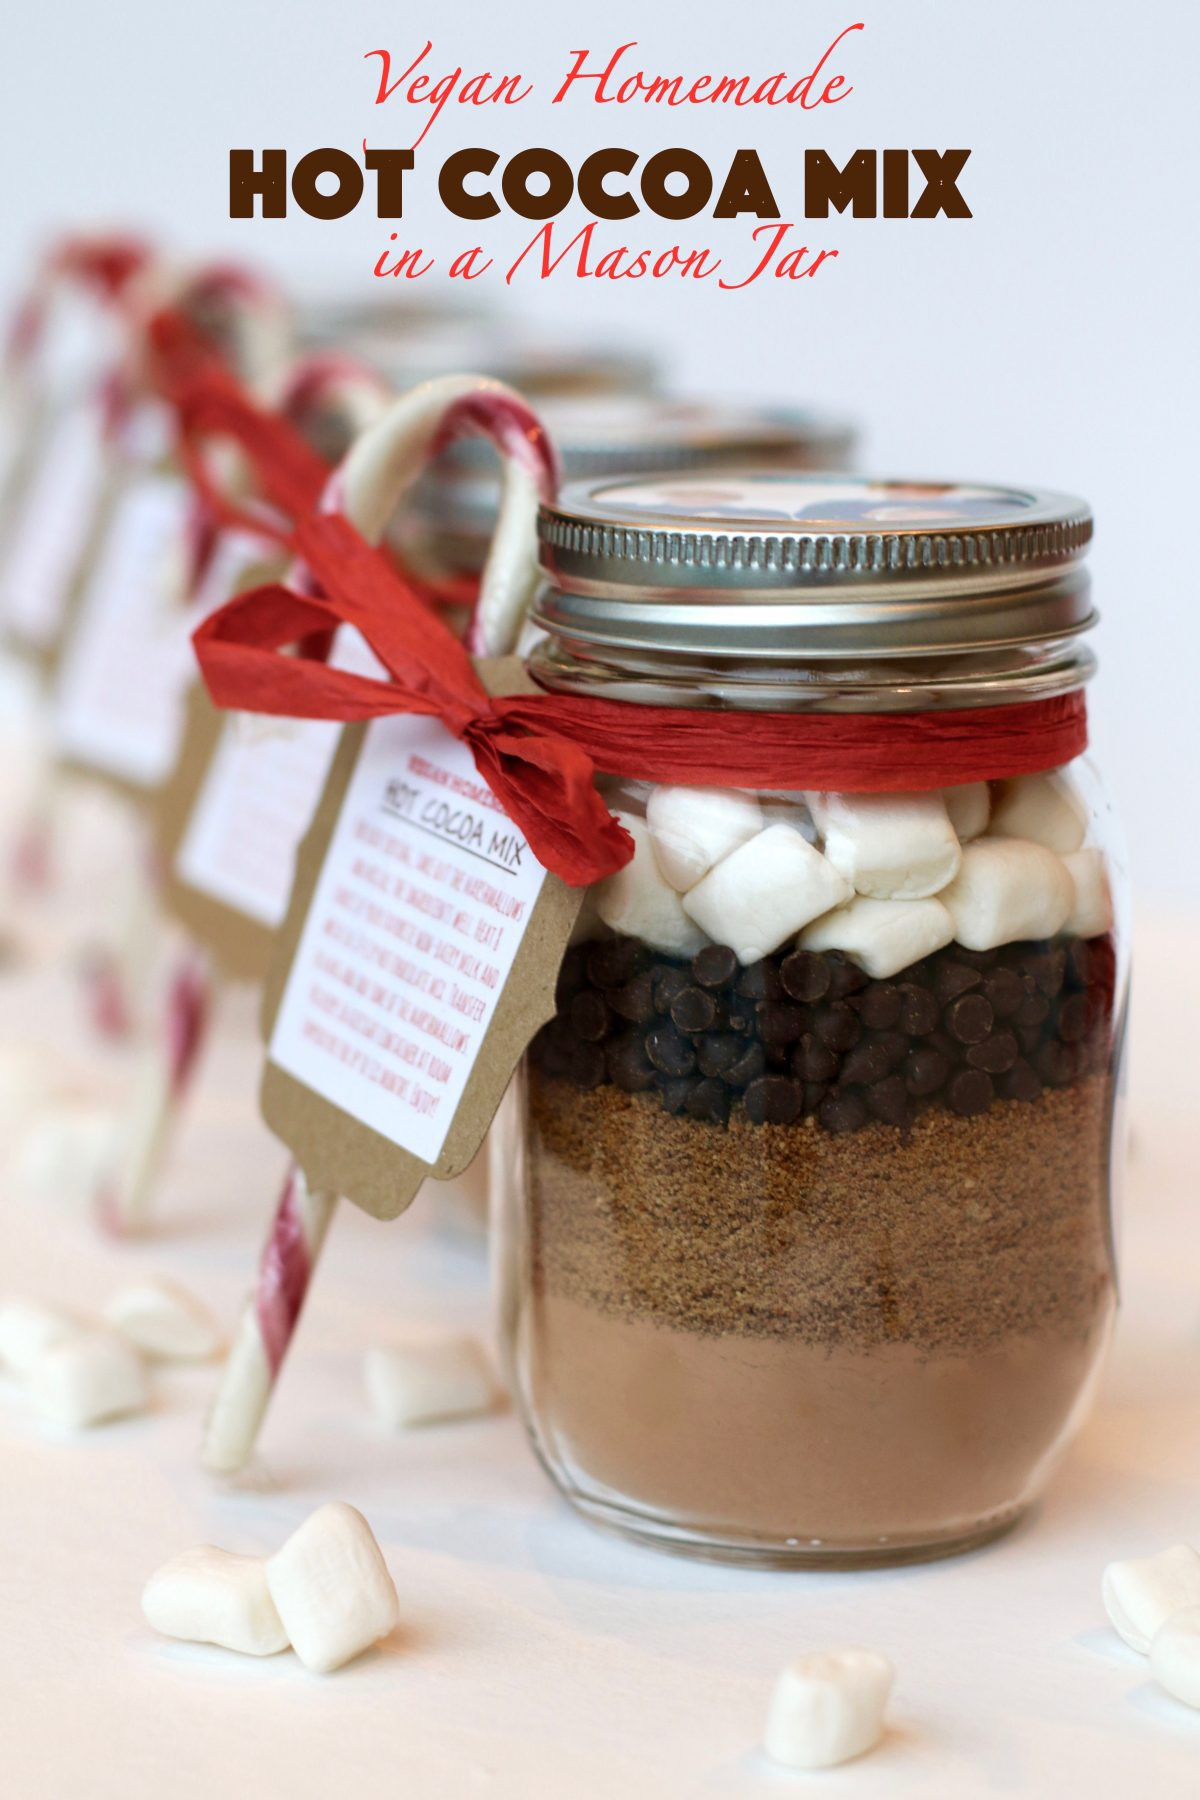 Best ideas about DIY Hot Cocoa Mix . Save or Pin Vegan Homemade Hot Cocoa Mix in a Mason Jar – RunCookLaugh Now.